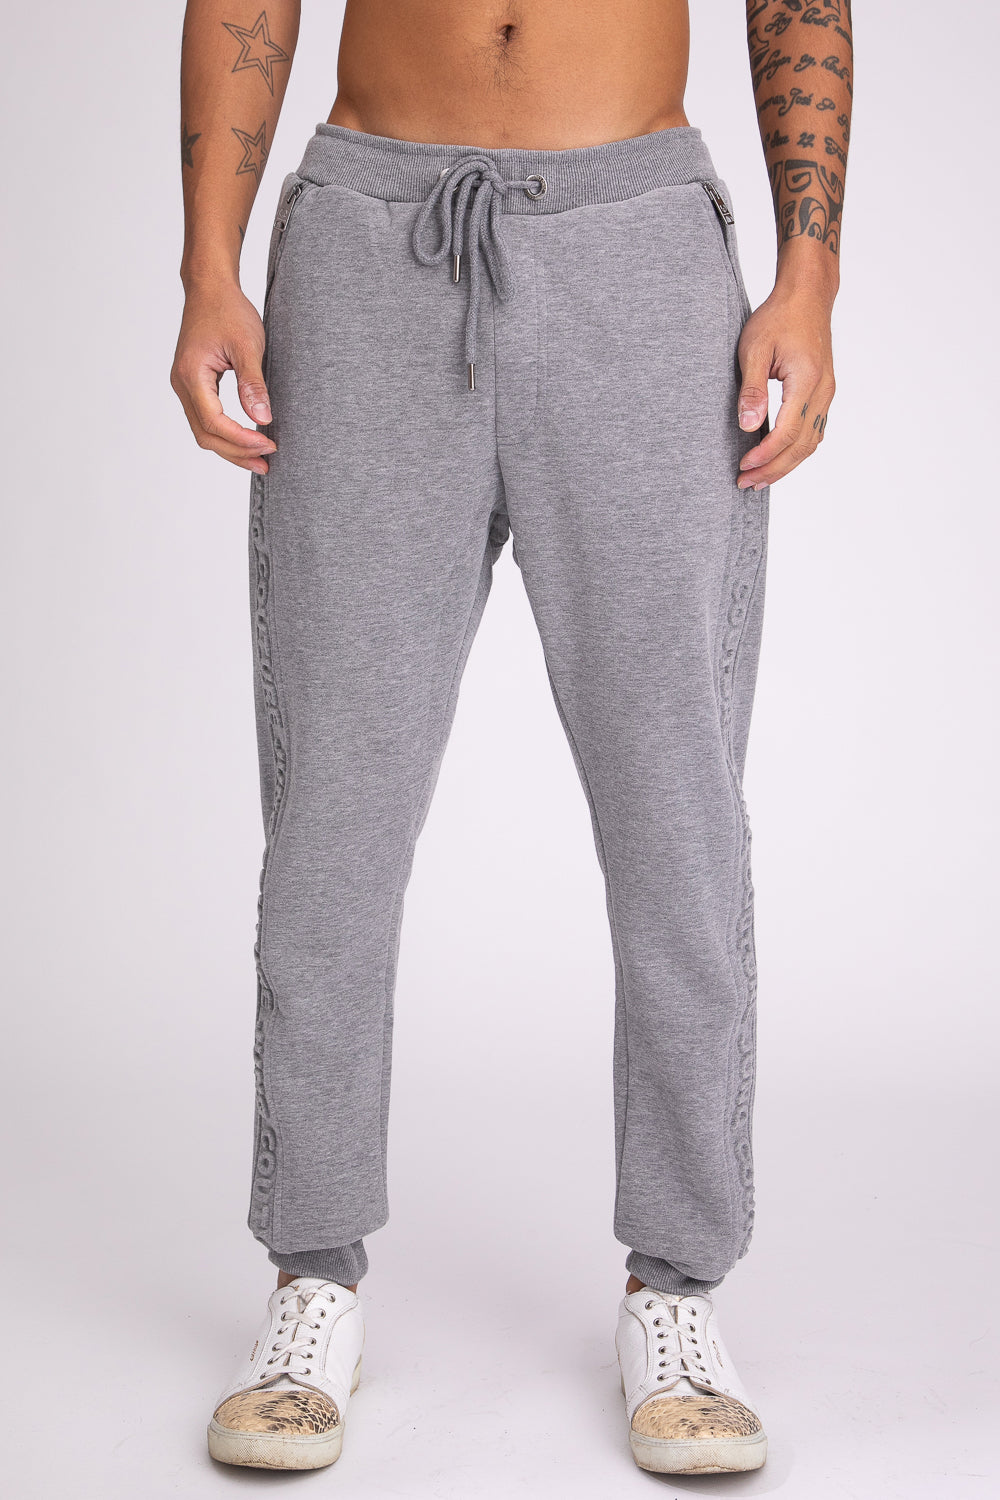 Style: Perivale 04 Grey Jogger - Junq Couture